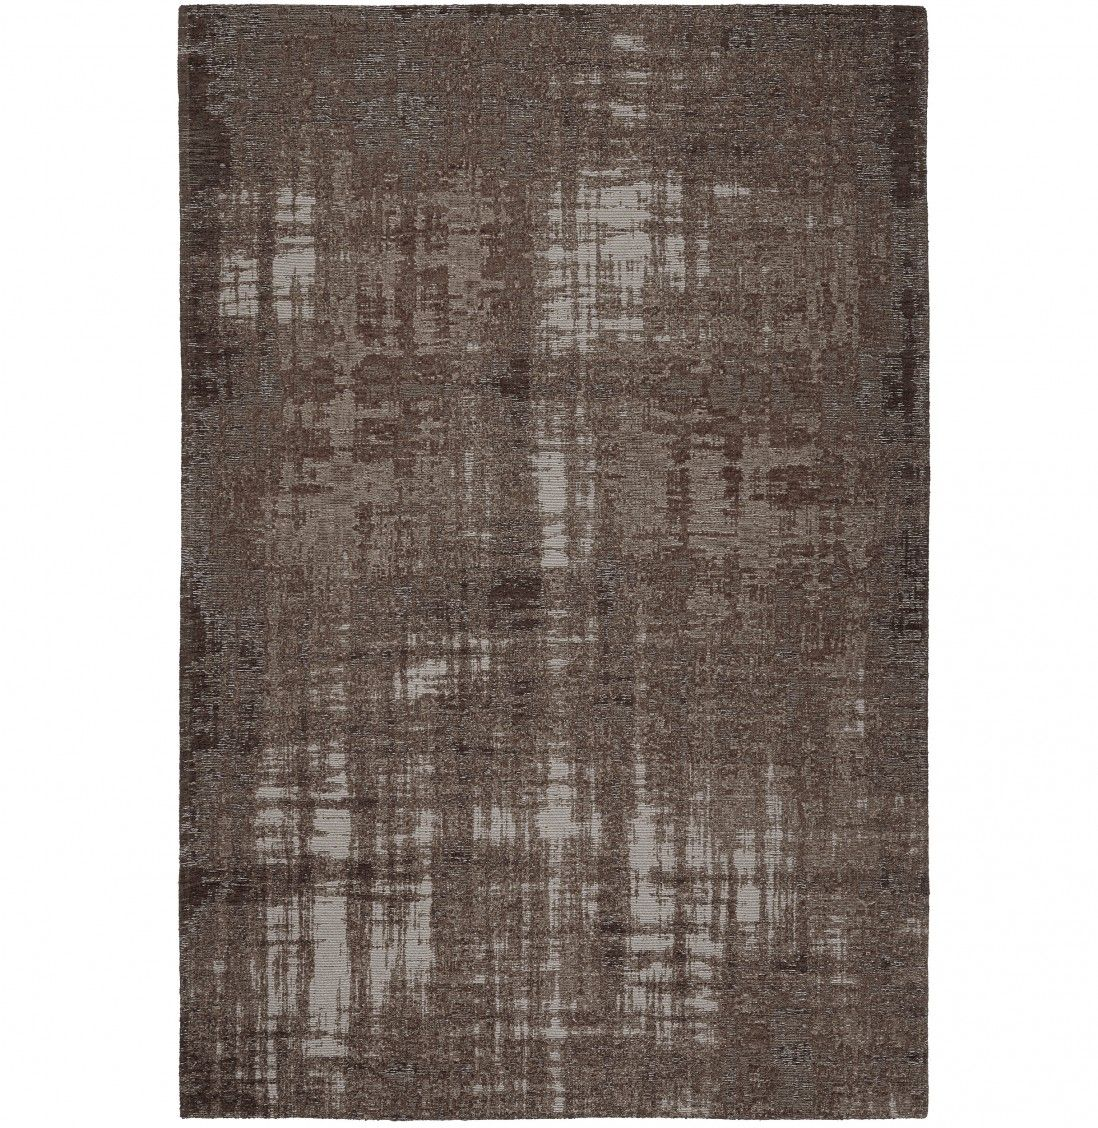 ANTIK CHENILLE 140x200 GRUNGE/BROWN